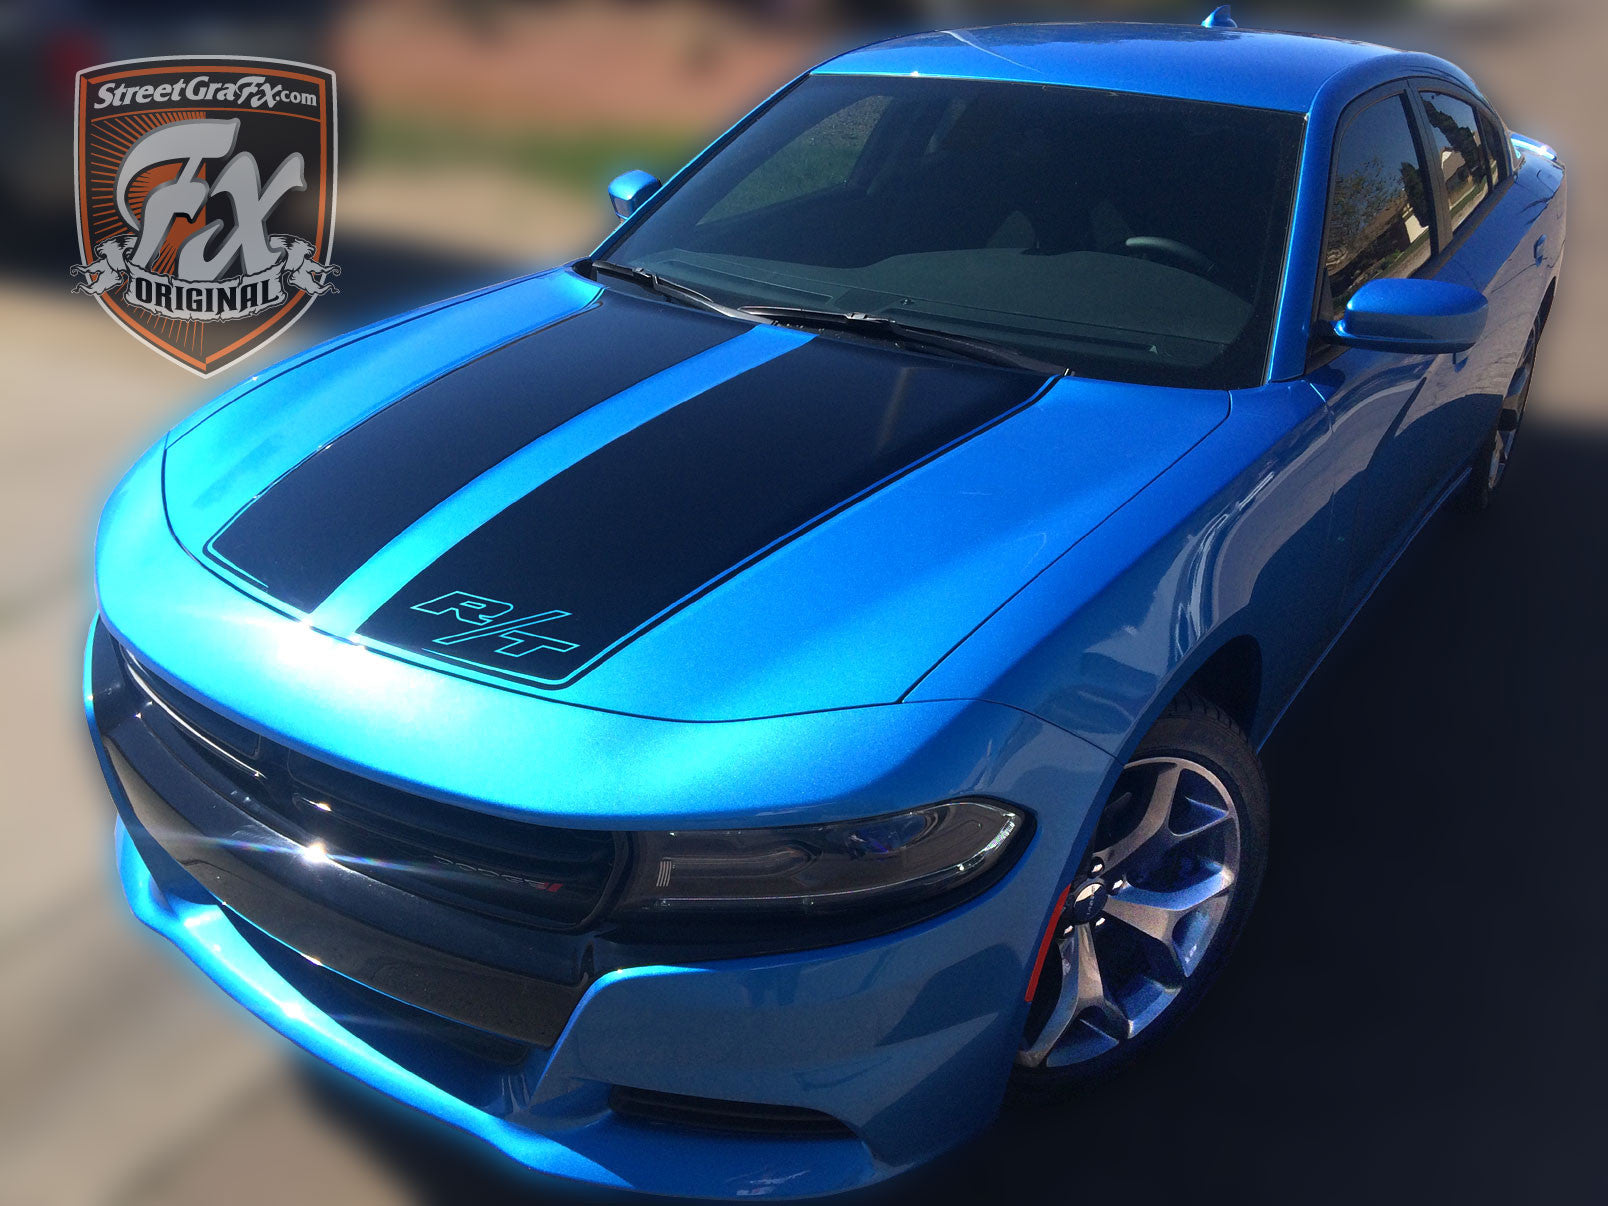 2017 Dodge Charger Rt White >> Dodge Charger Stripes, Racing Stripes & R/T Graphic kit – streetgrafx